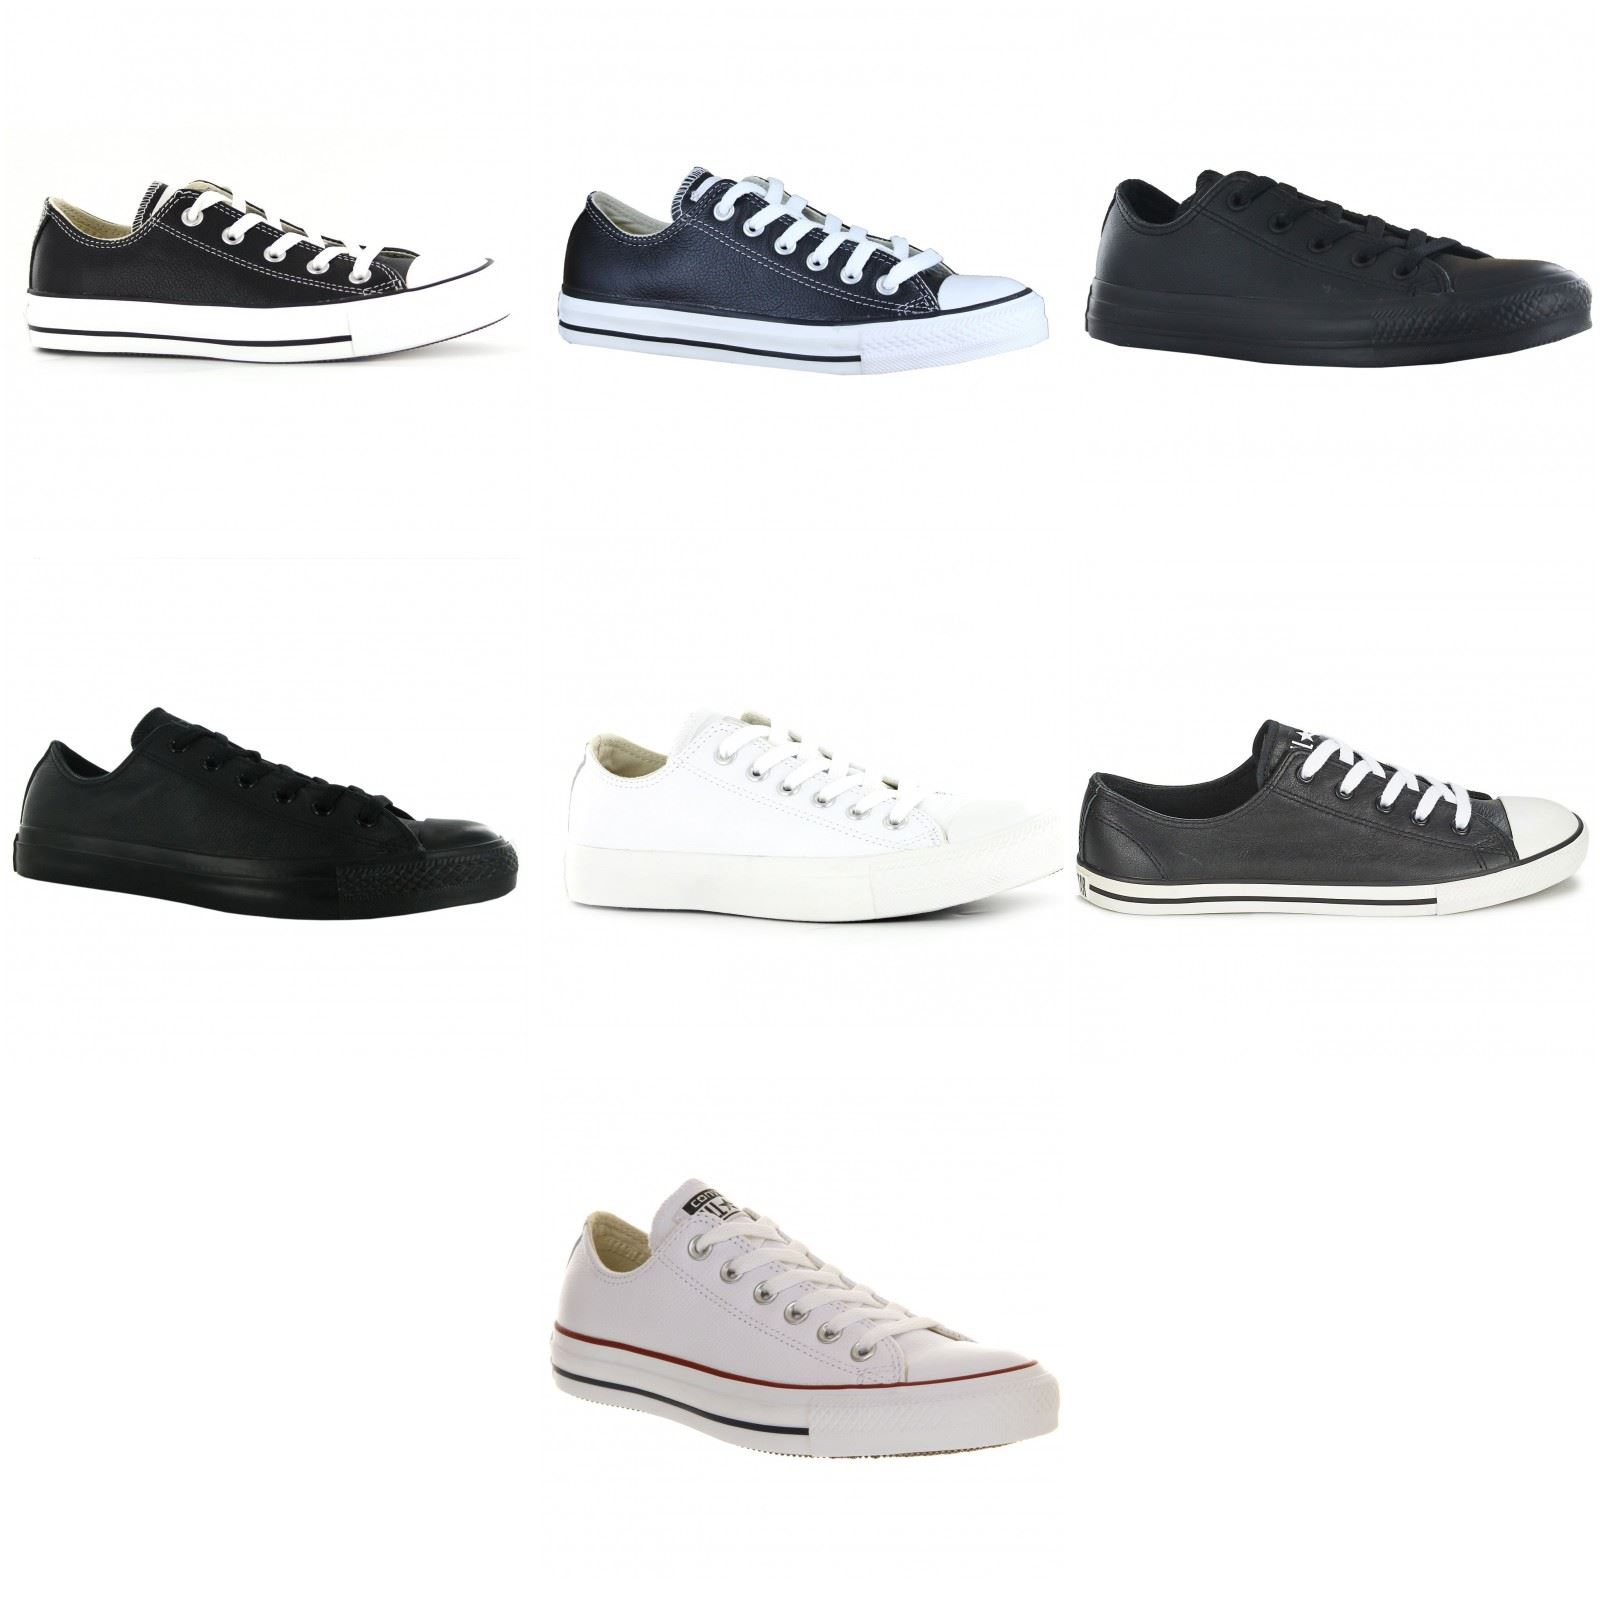 128409db5 Converse All Star Ct Ox Leather Unisex Mens Womens Ladies Trainers ...